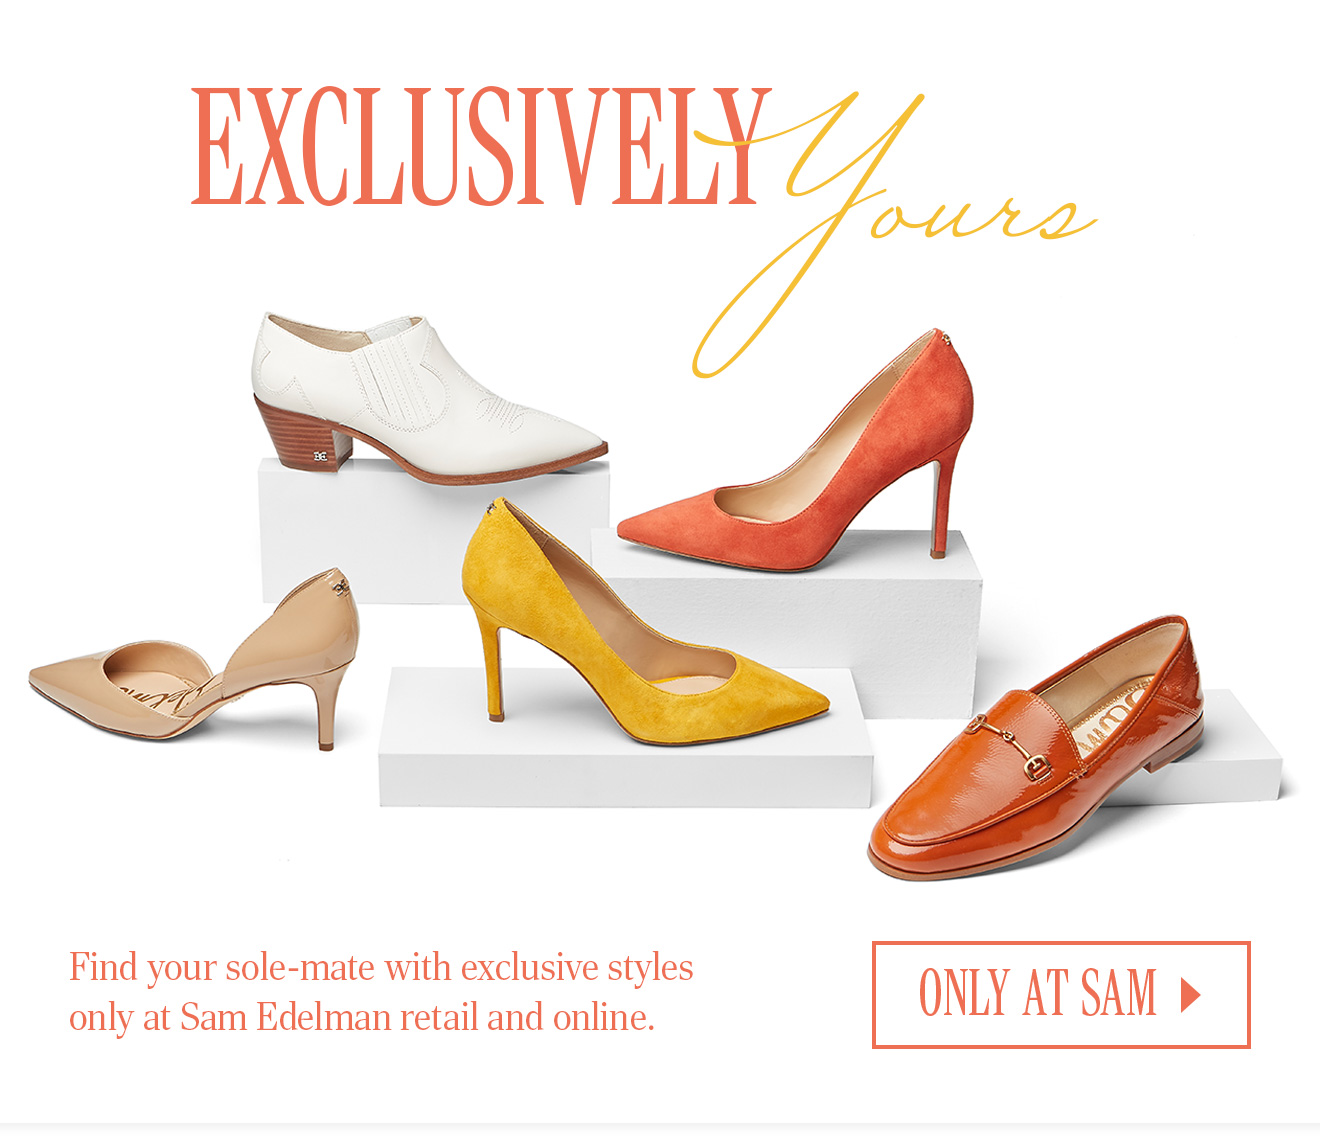 EXCLUSIVELY YOURS. Find your sole-mate with exclusive styles only at Sam Edelman retail and online. ONLY AT SAM